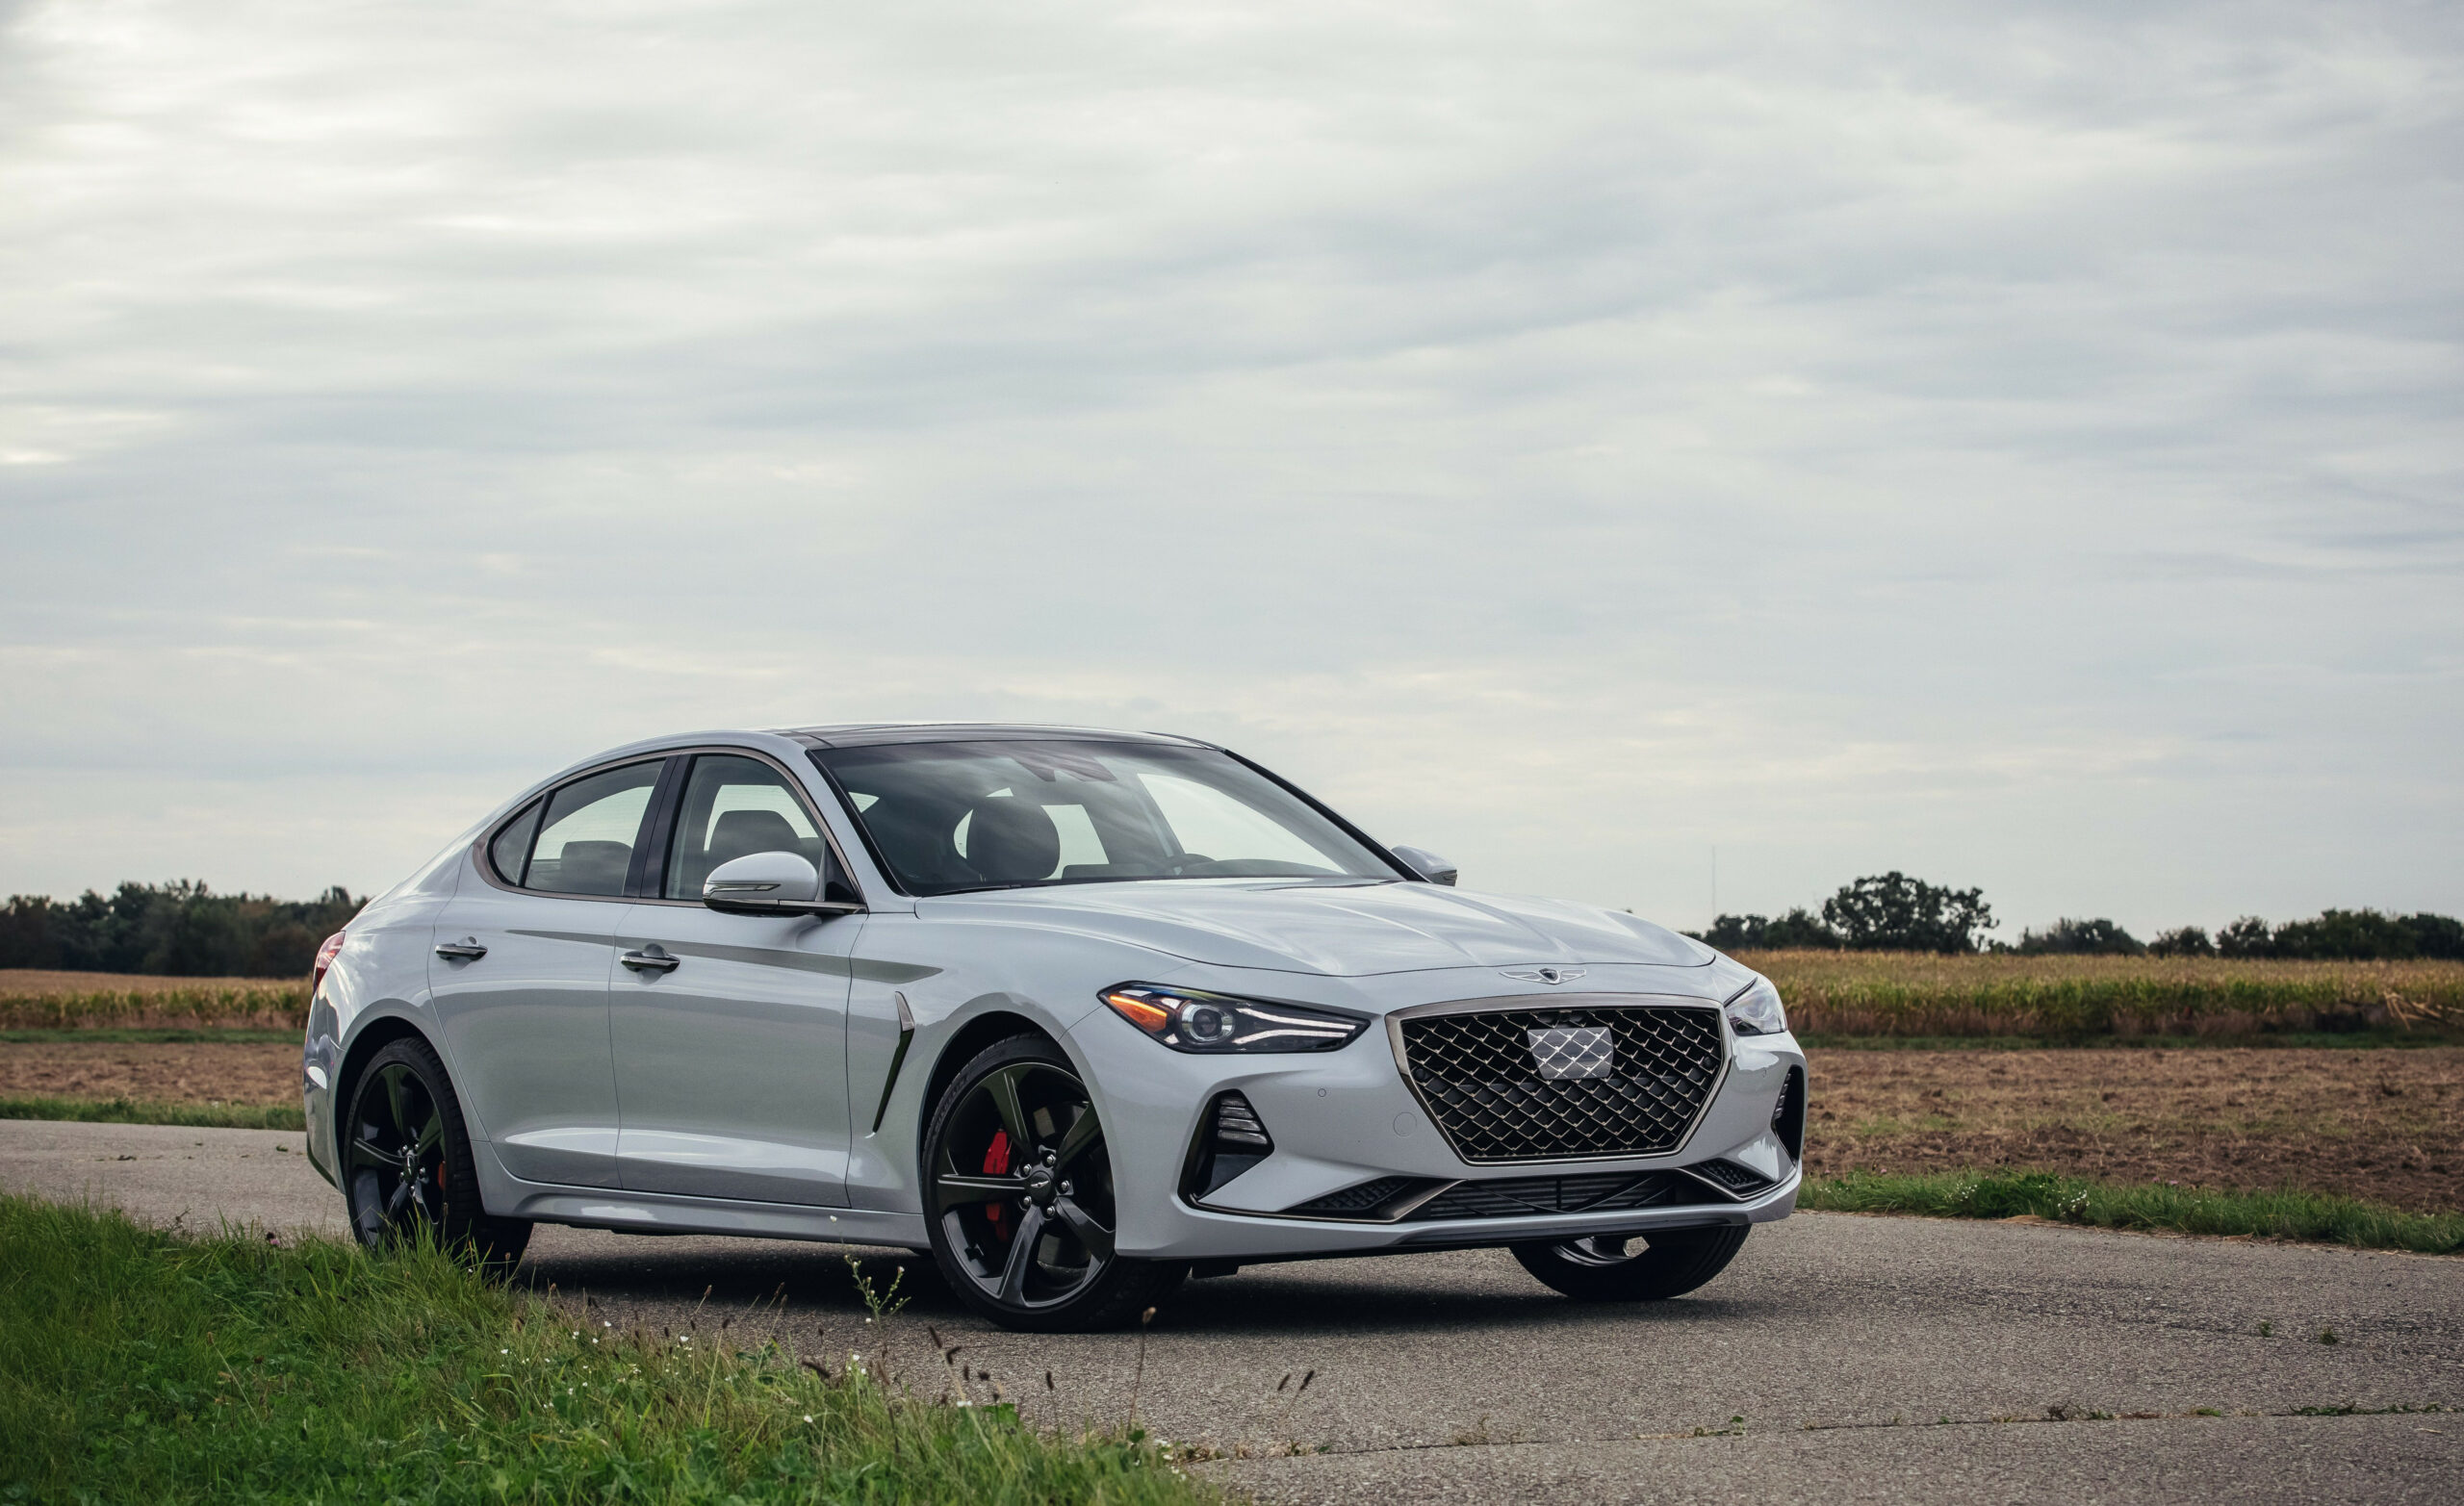 6 Genesis G6 Review, Pricing, and Specs